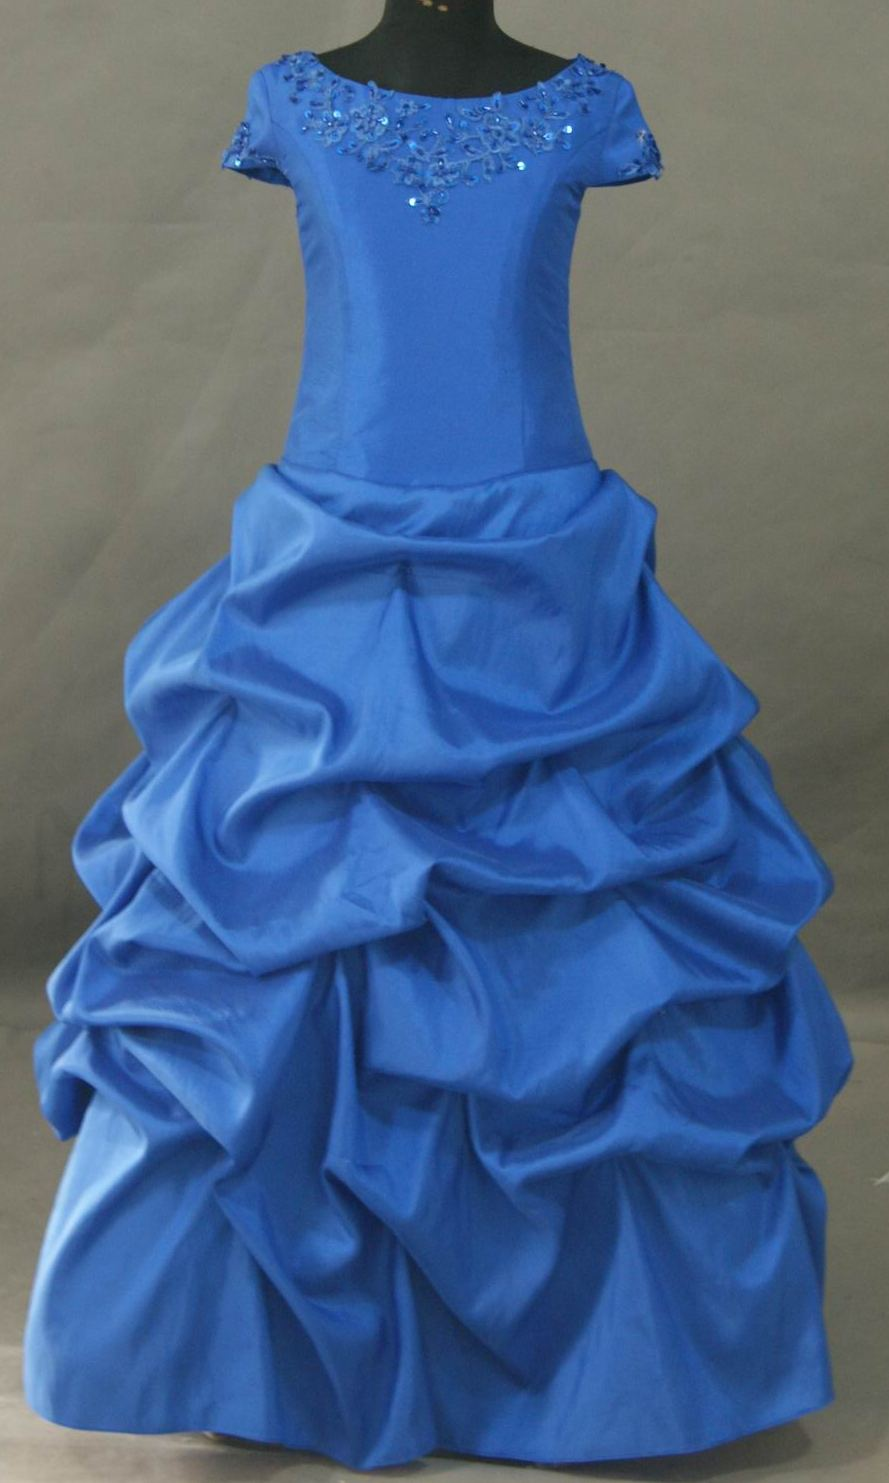 Childrens Royal Blue Party Dresses 95